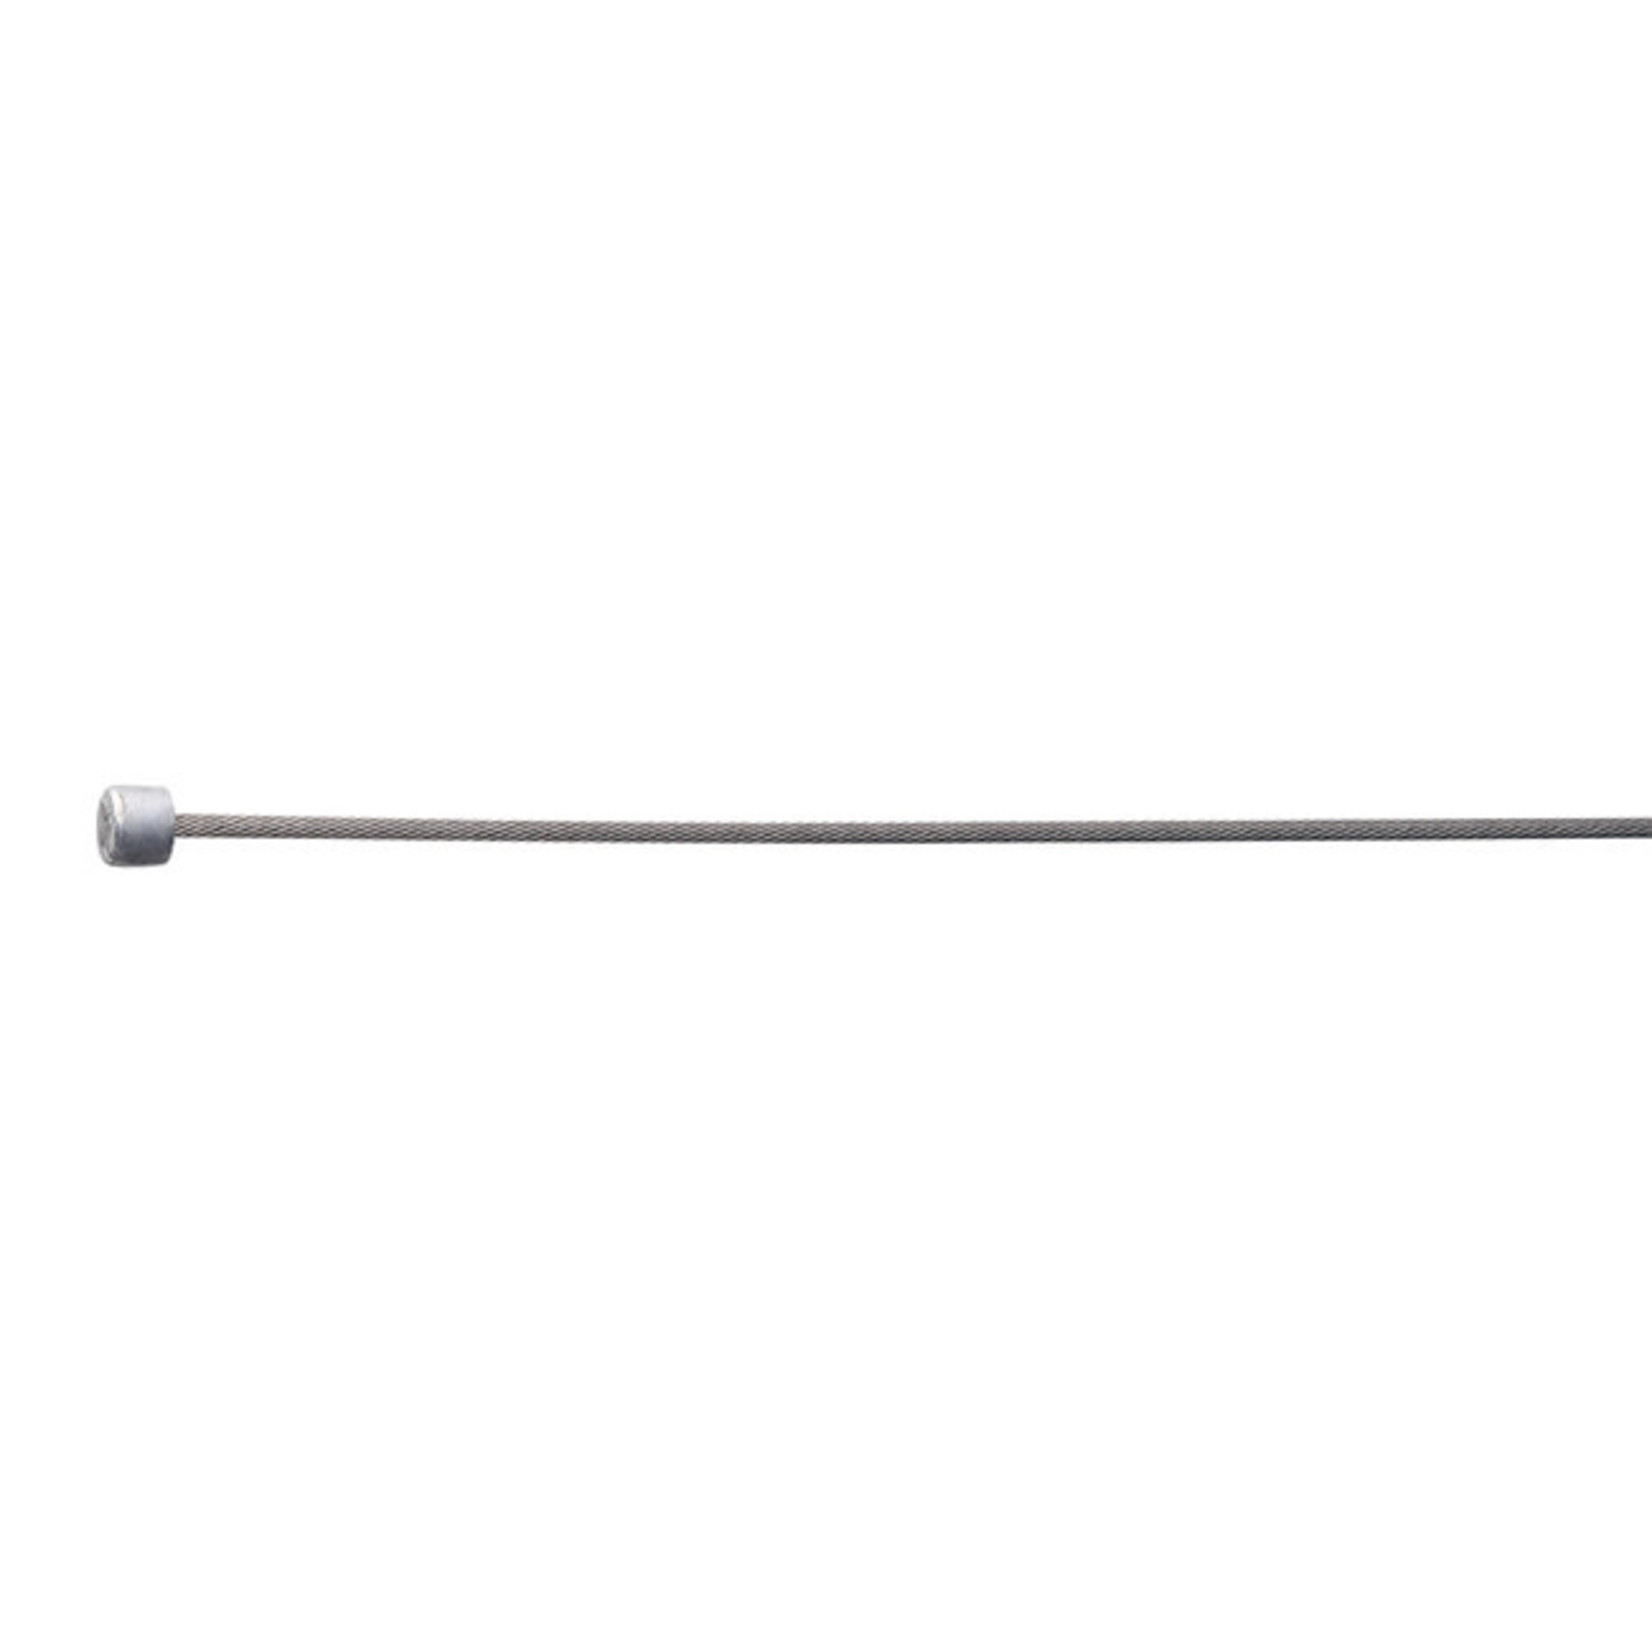 Shimano SUS STAINLESS STEEL SHIFT INNER CABLE- TANDEM 1.2MM X 3000MM